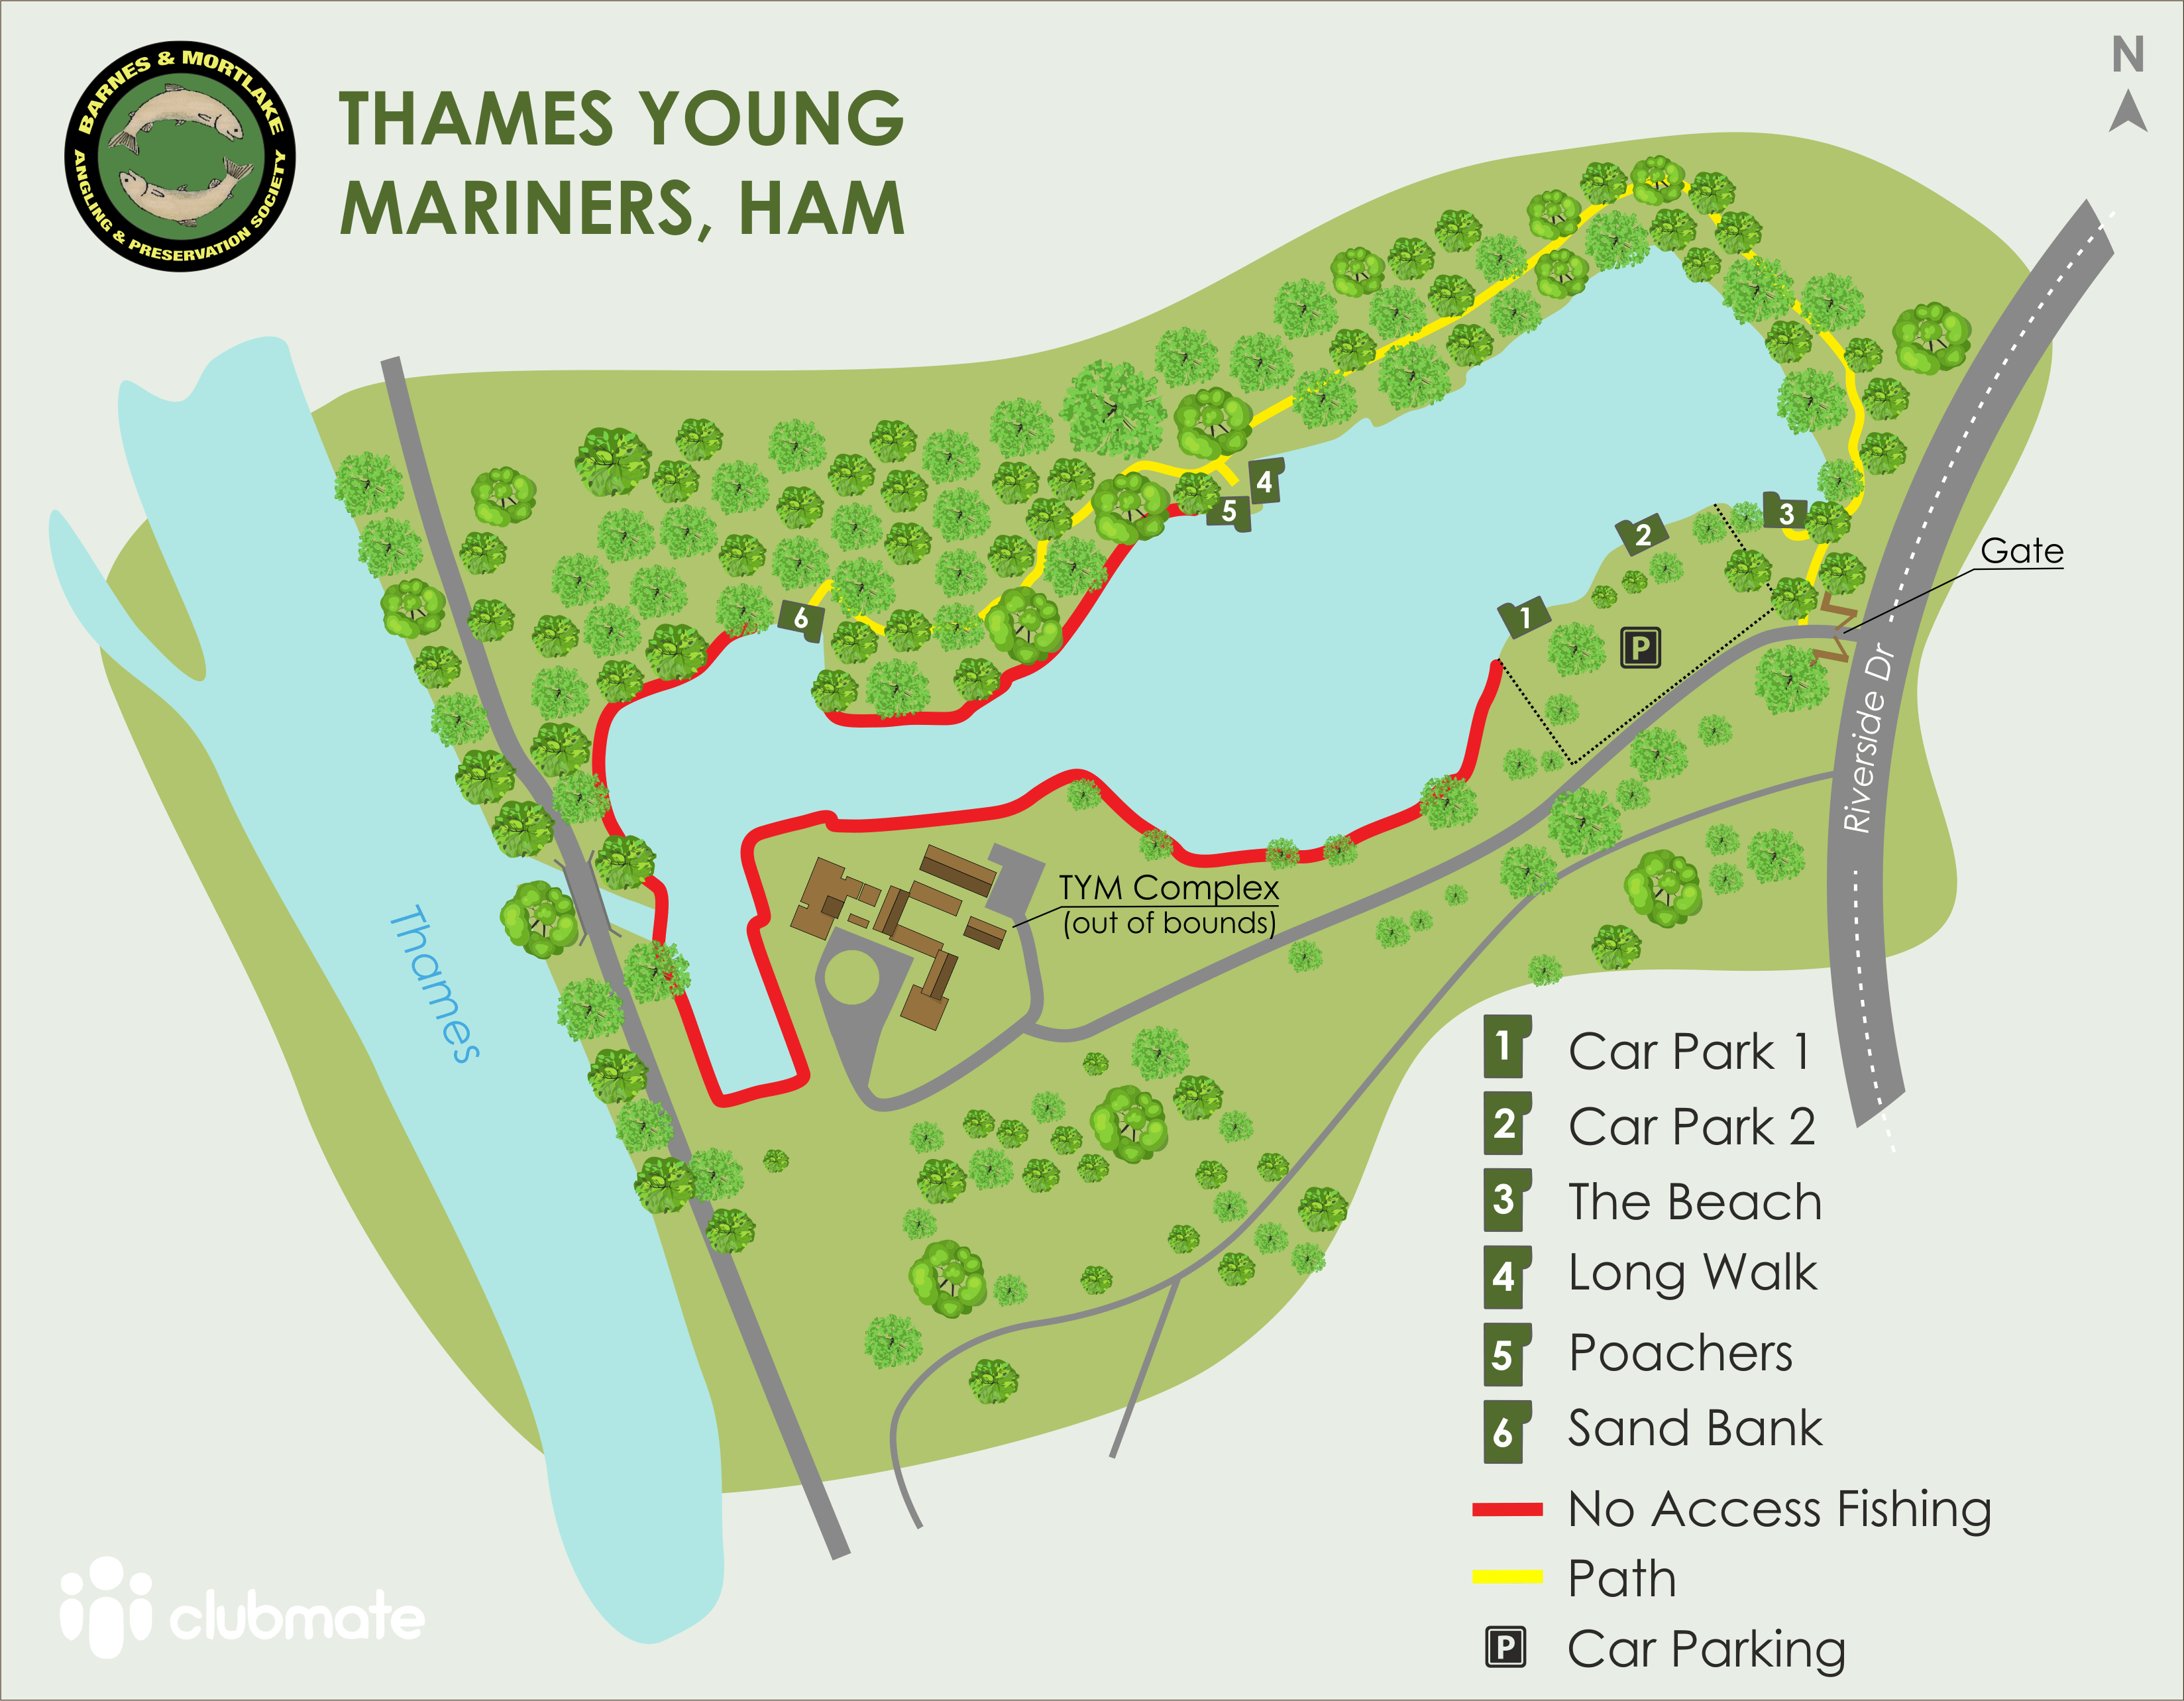 Thames_Young_Mariners_Map_FINAL